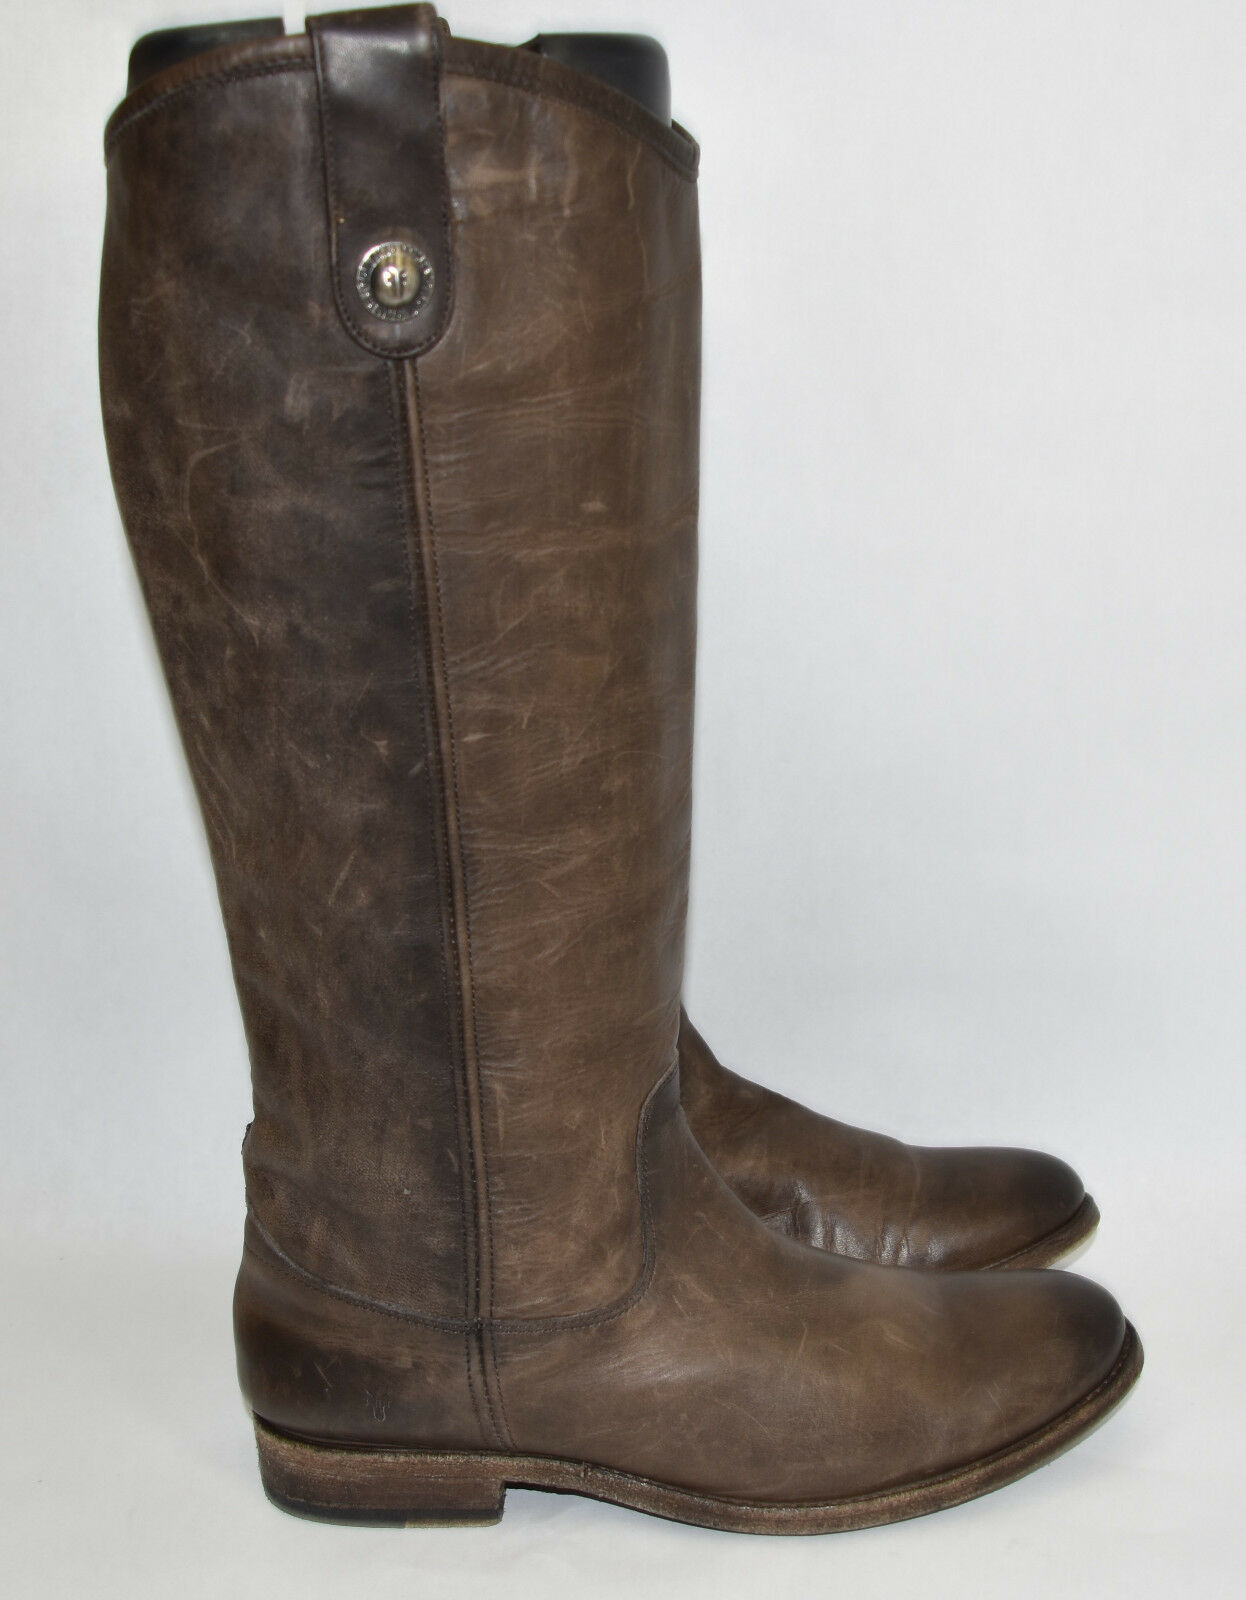 Frye  7.5  'Melissa Button' Riding Boot Slate Grigio Knee High Leather  370 77172